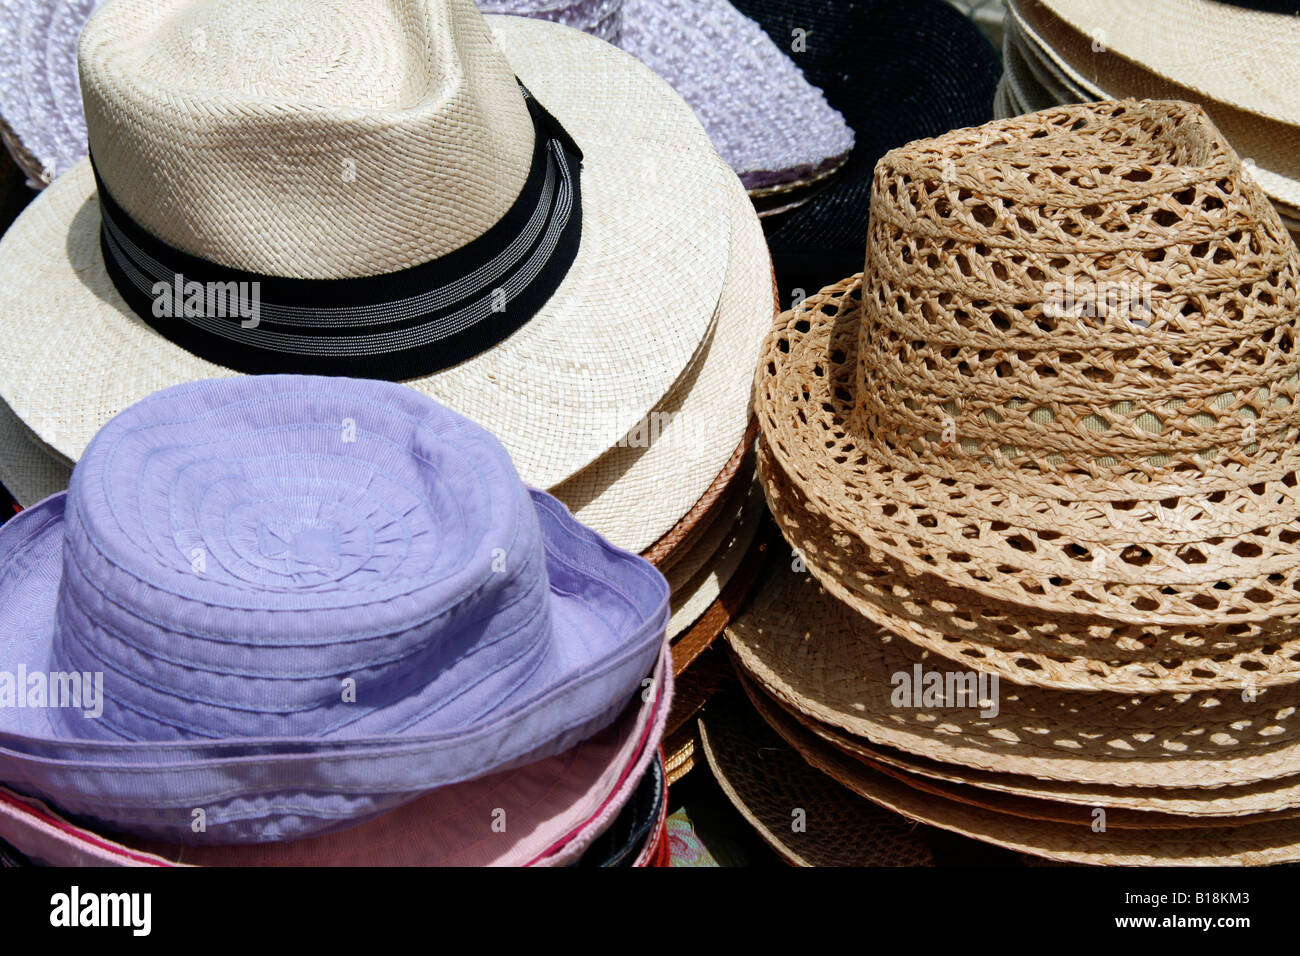 7f7225e77e44a selection of straw hats on outdoor market stall Stock Photo ...